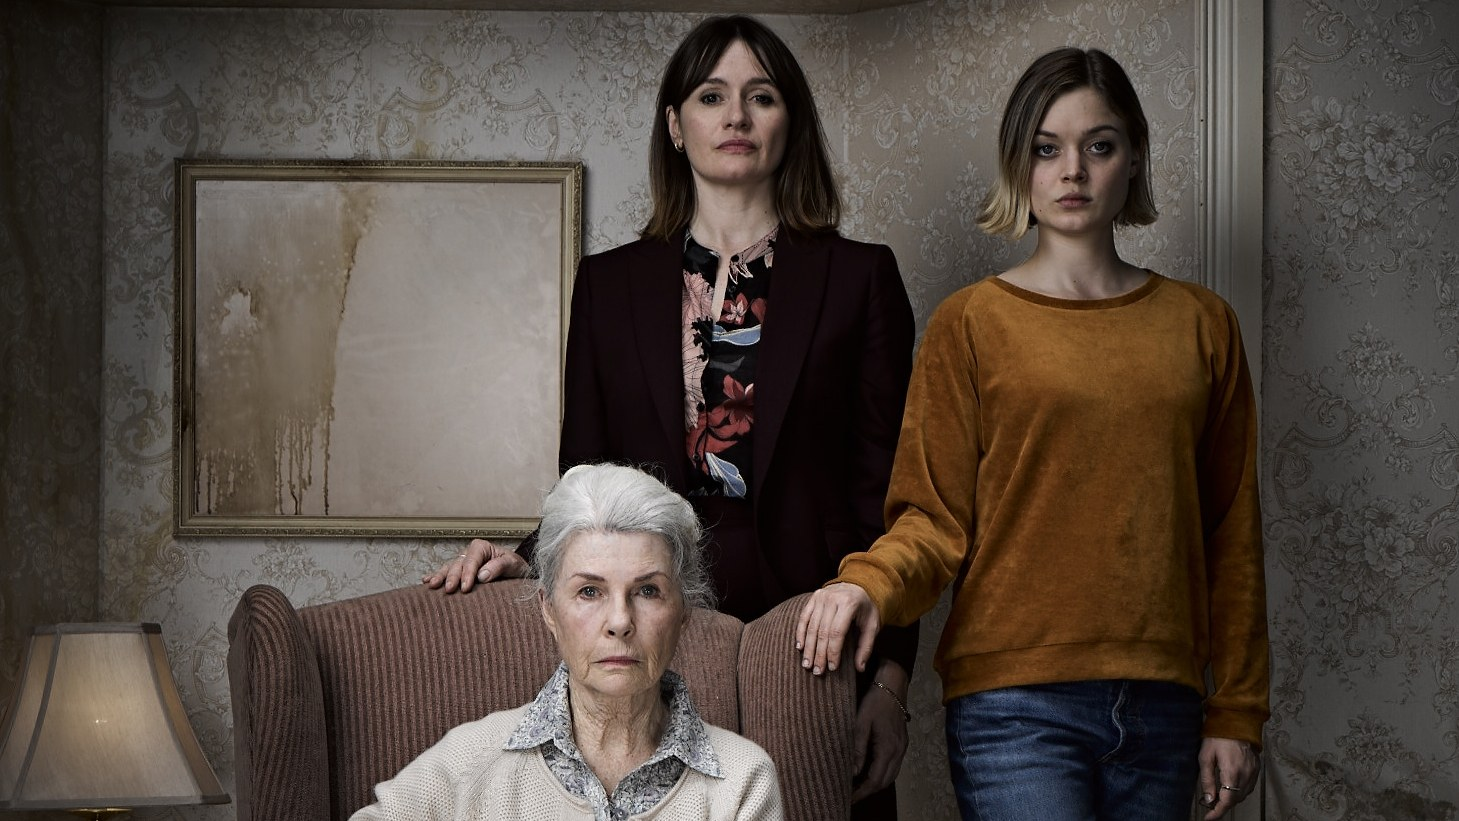 """Robyn Nevin as """"Edna,"""" Emily Mortimer as """"Kay,"""" and Bella Heathcote as """"Sam"""" in """"Relic."""""""